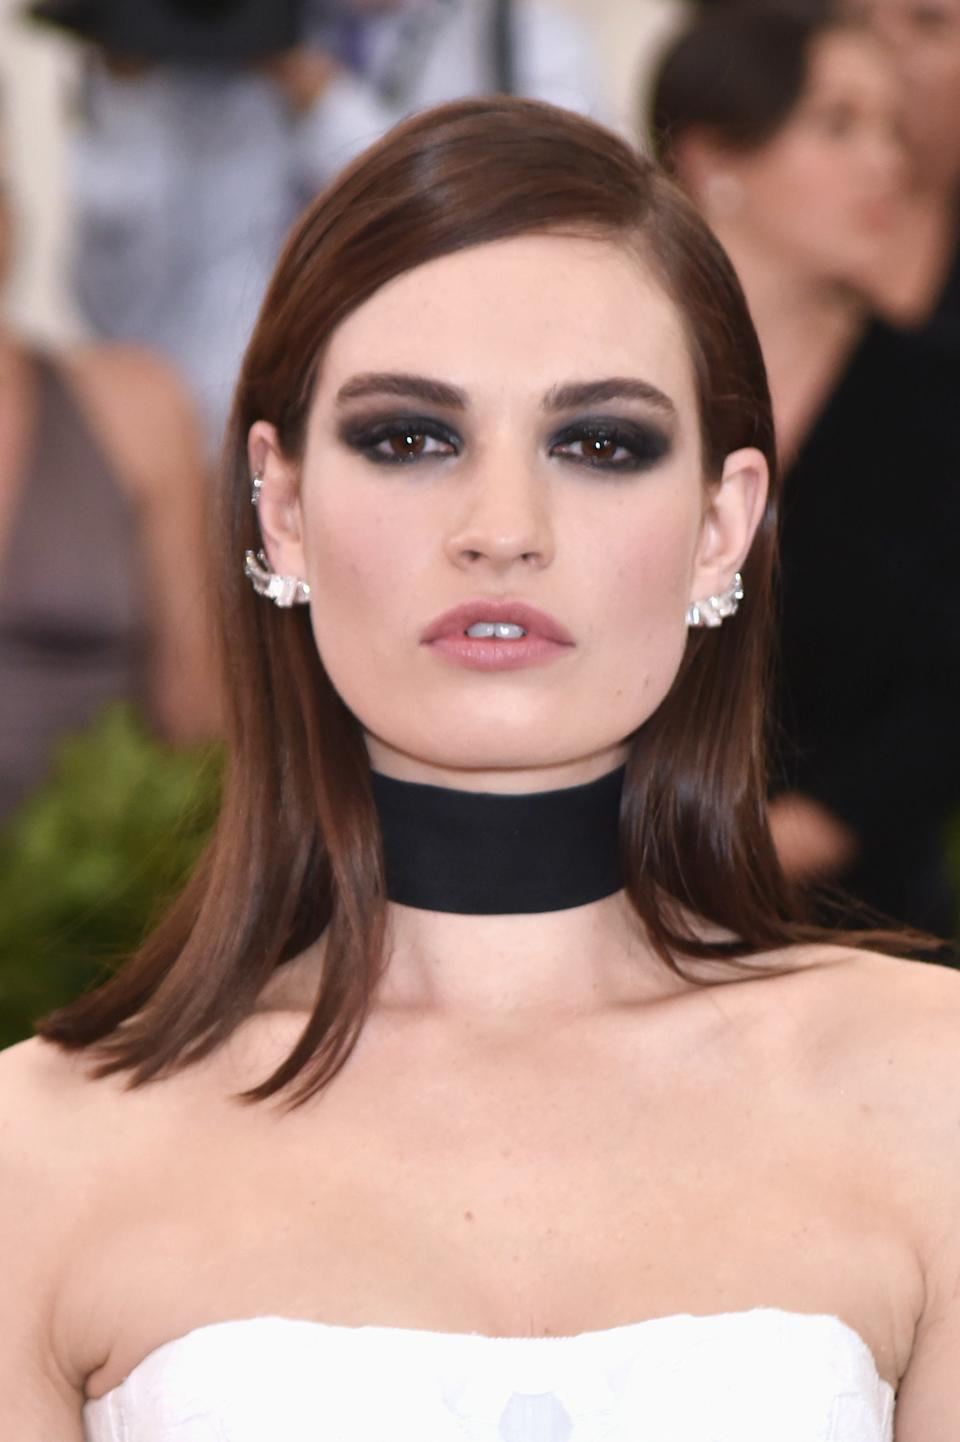 Lily James attends The Metropolitan Museum of Art Costume Institute Benefit celebrating the opening of Rei Kawakubo / Comme des Garcons : Art of the In-Between held at The Metropolitan Museum of Art in New York, NY, on May 1, 2017. (Photo by Steven Ferdman) *** Please Use Credit from Credit Field ***